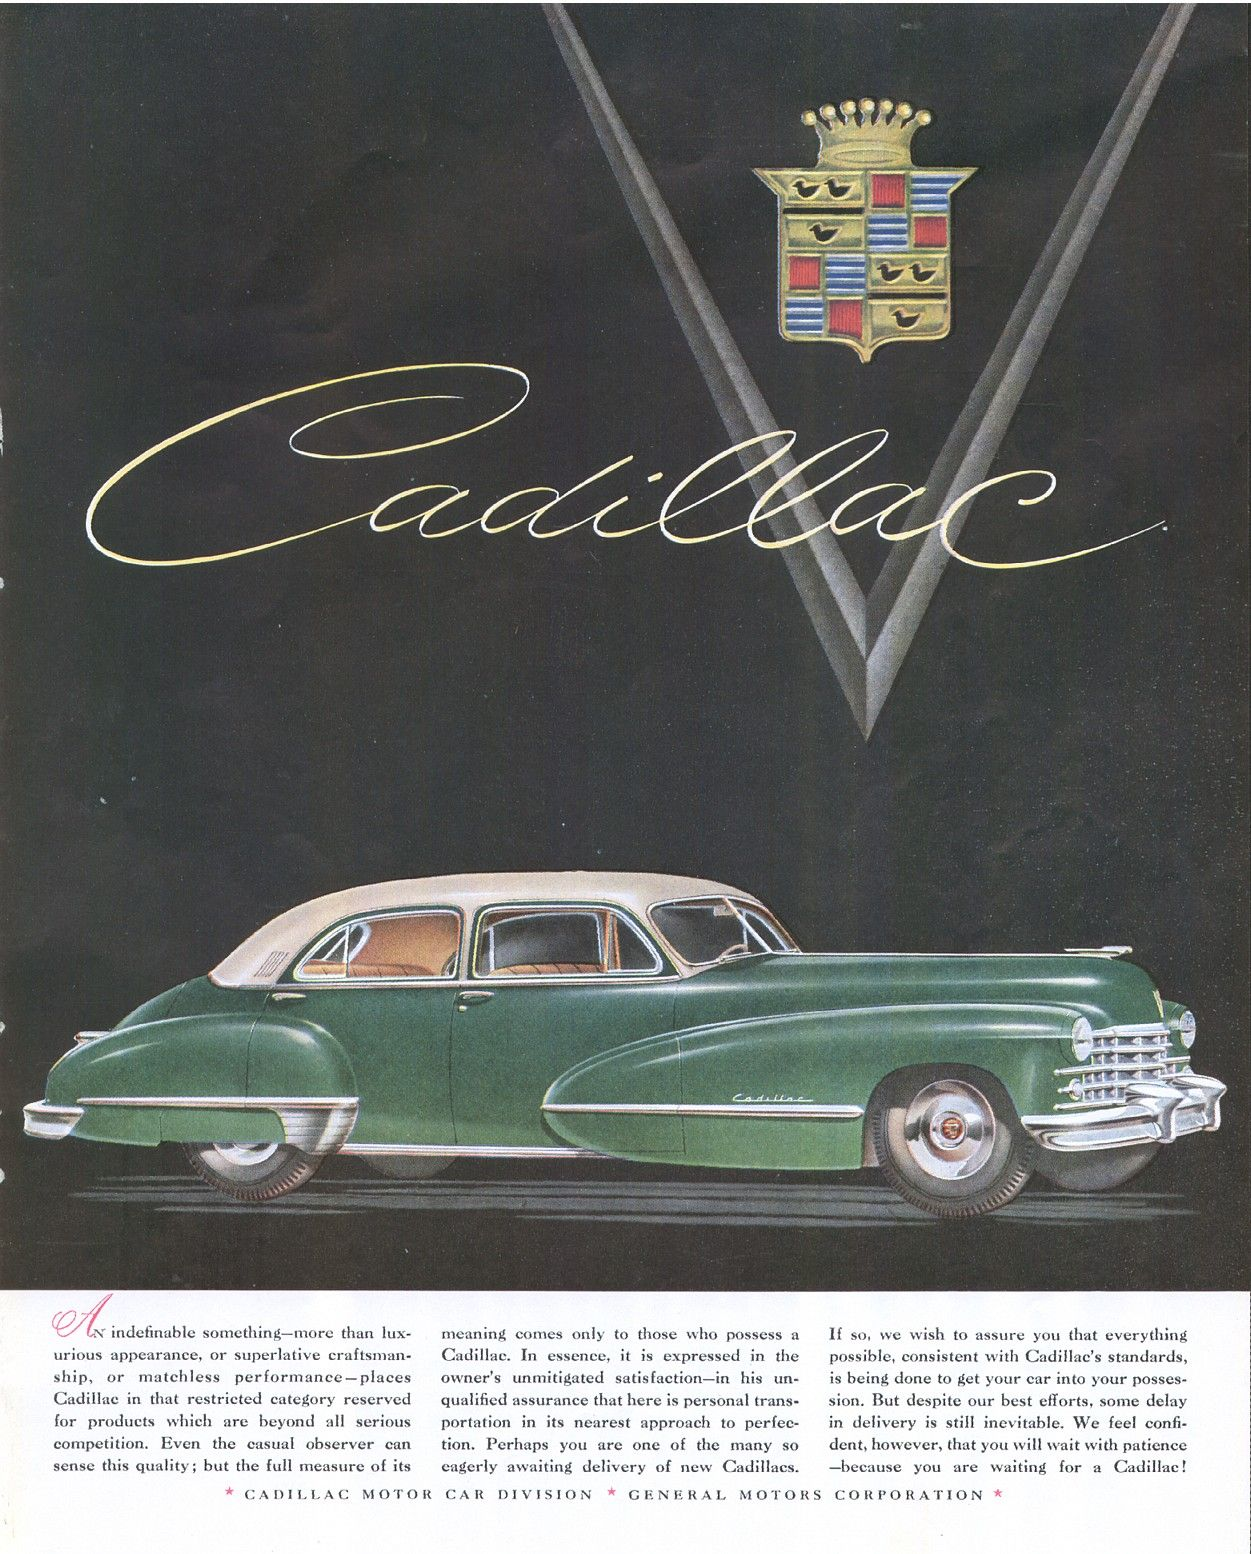 Vintage cadillac ads vintage mid century cadillac ad 1947 fortune the evolution of the cadillac what an amazing transformation from then to now fandeluxe Image collections